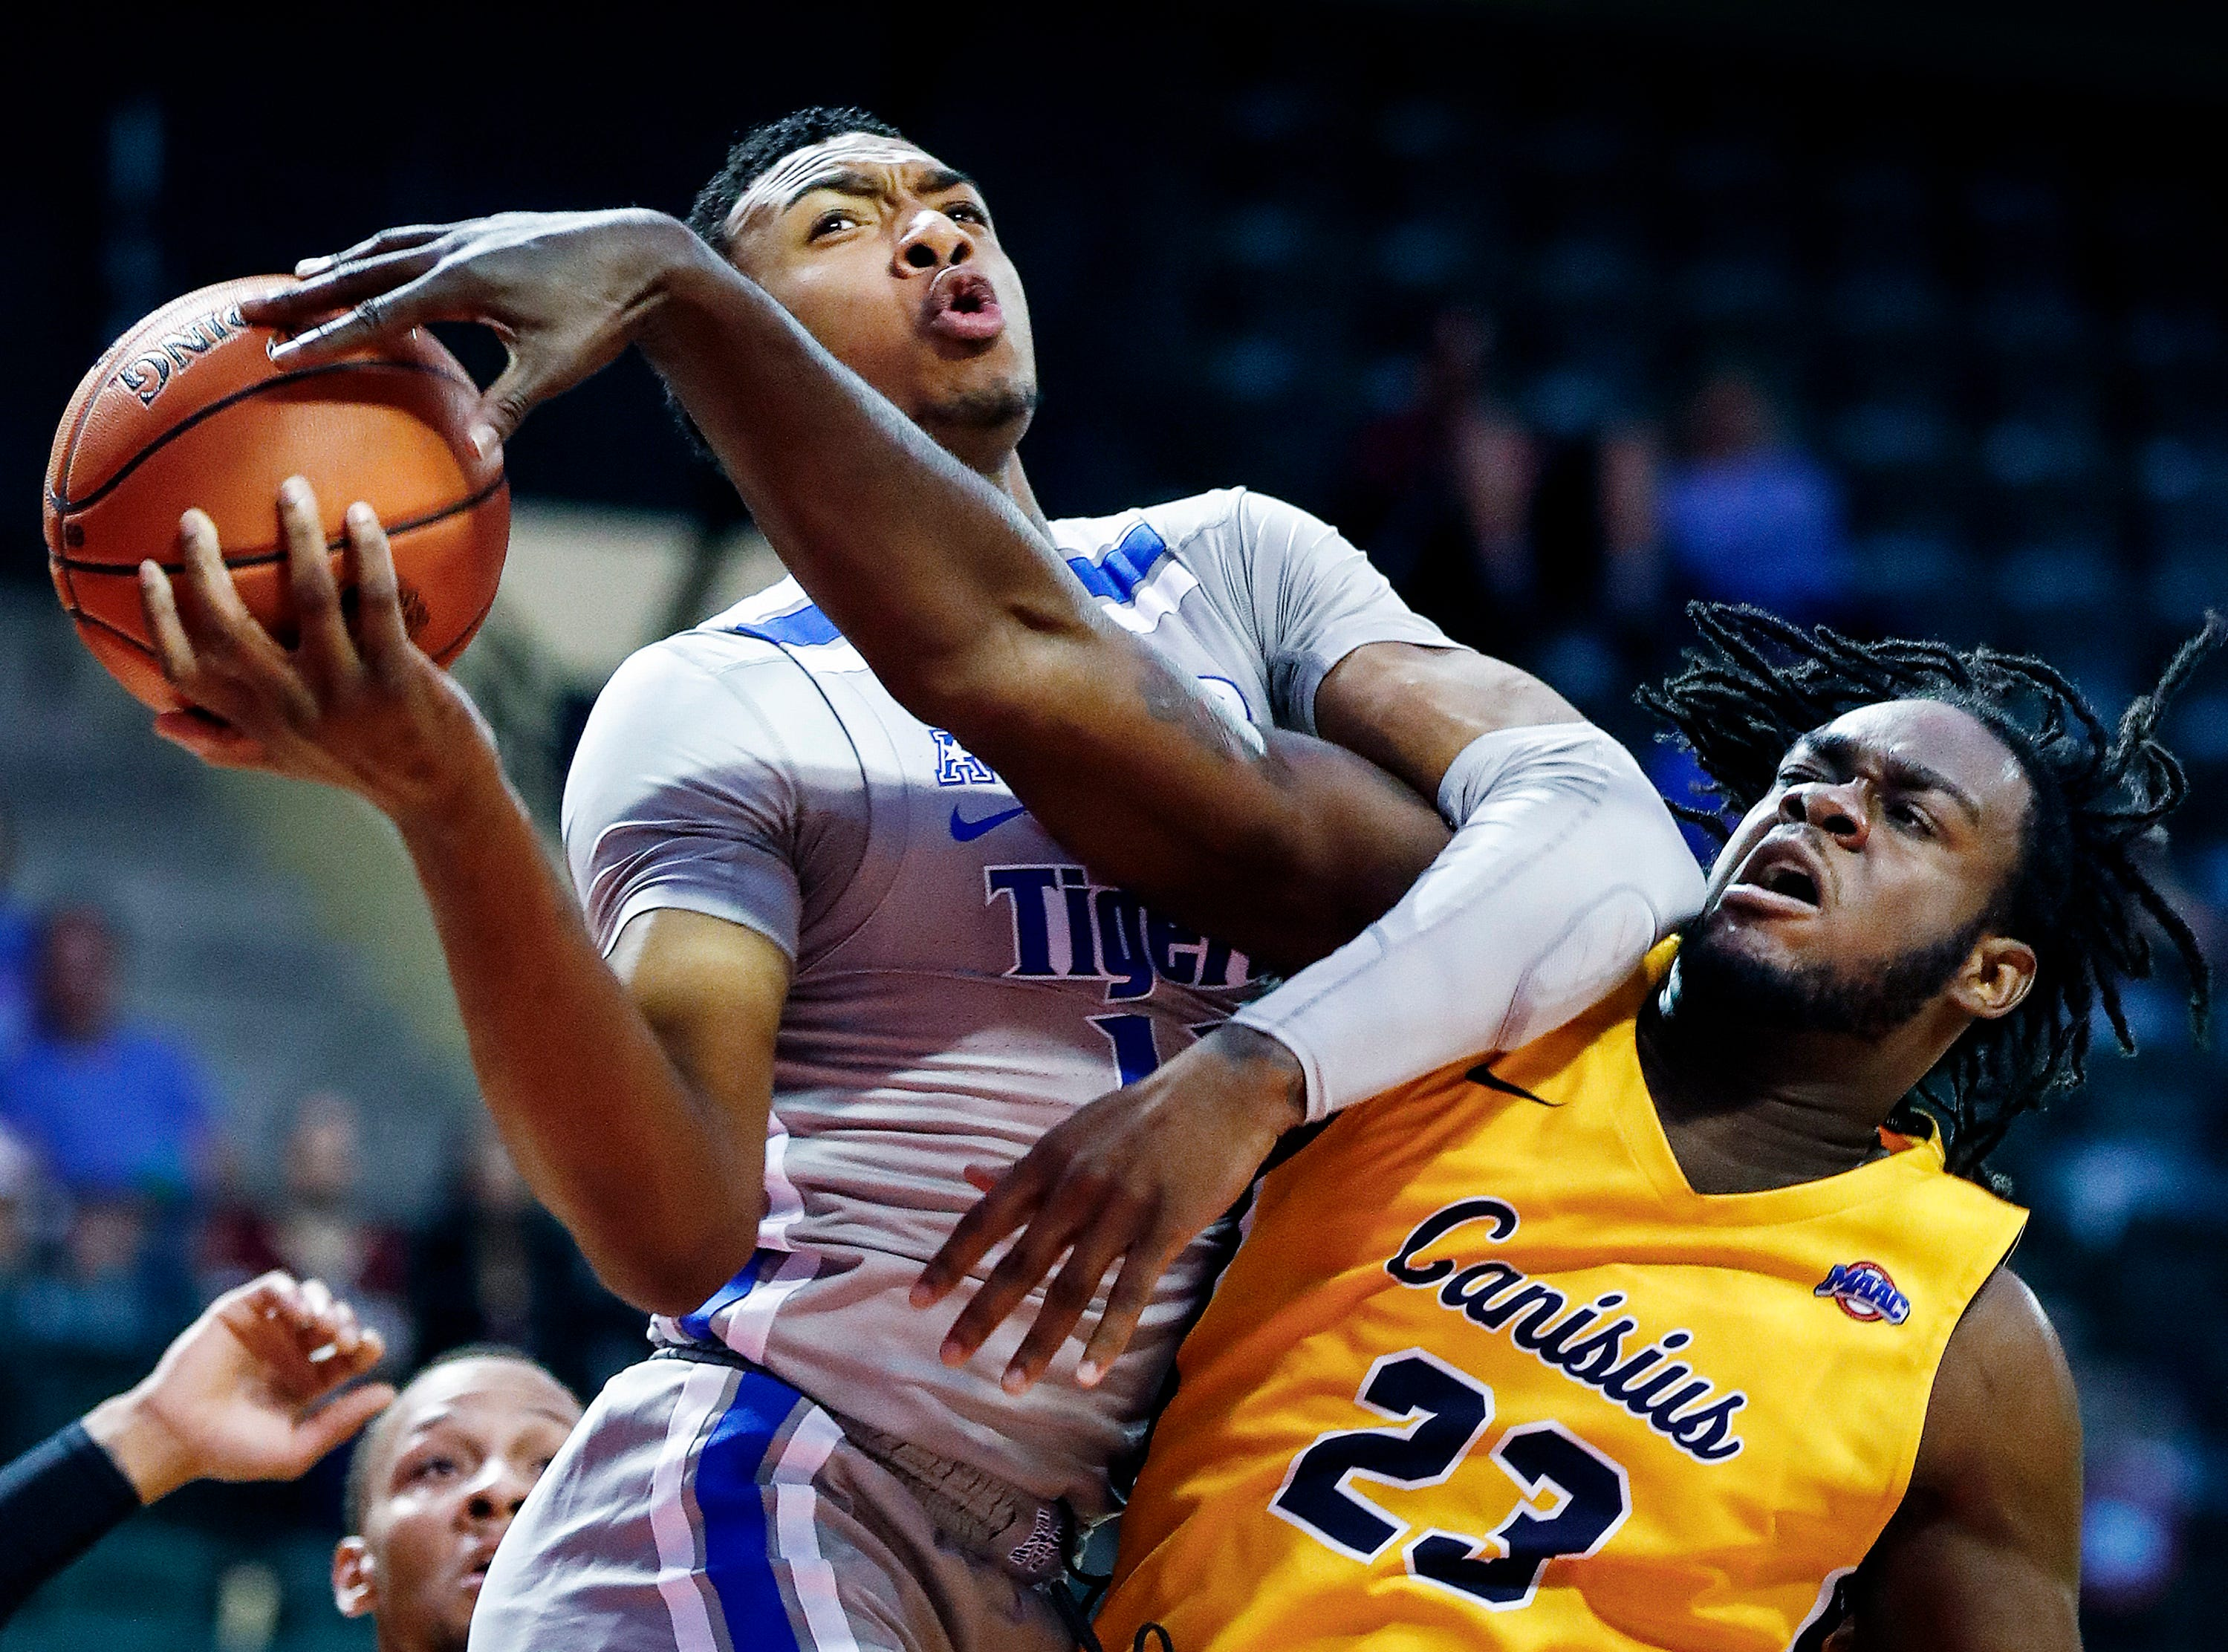 Memphis guard Antwann Jones (left) has his shot blocked by Canisius defender Dantai St. Louis (right) during second day action in the Advocate Invitational in Orlando Friday, November 23, 2018. Jones was able to recover the ball and score a layup on the play.